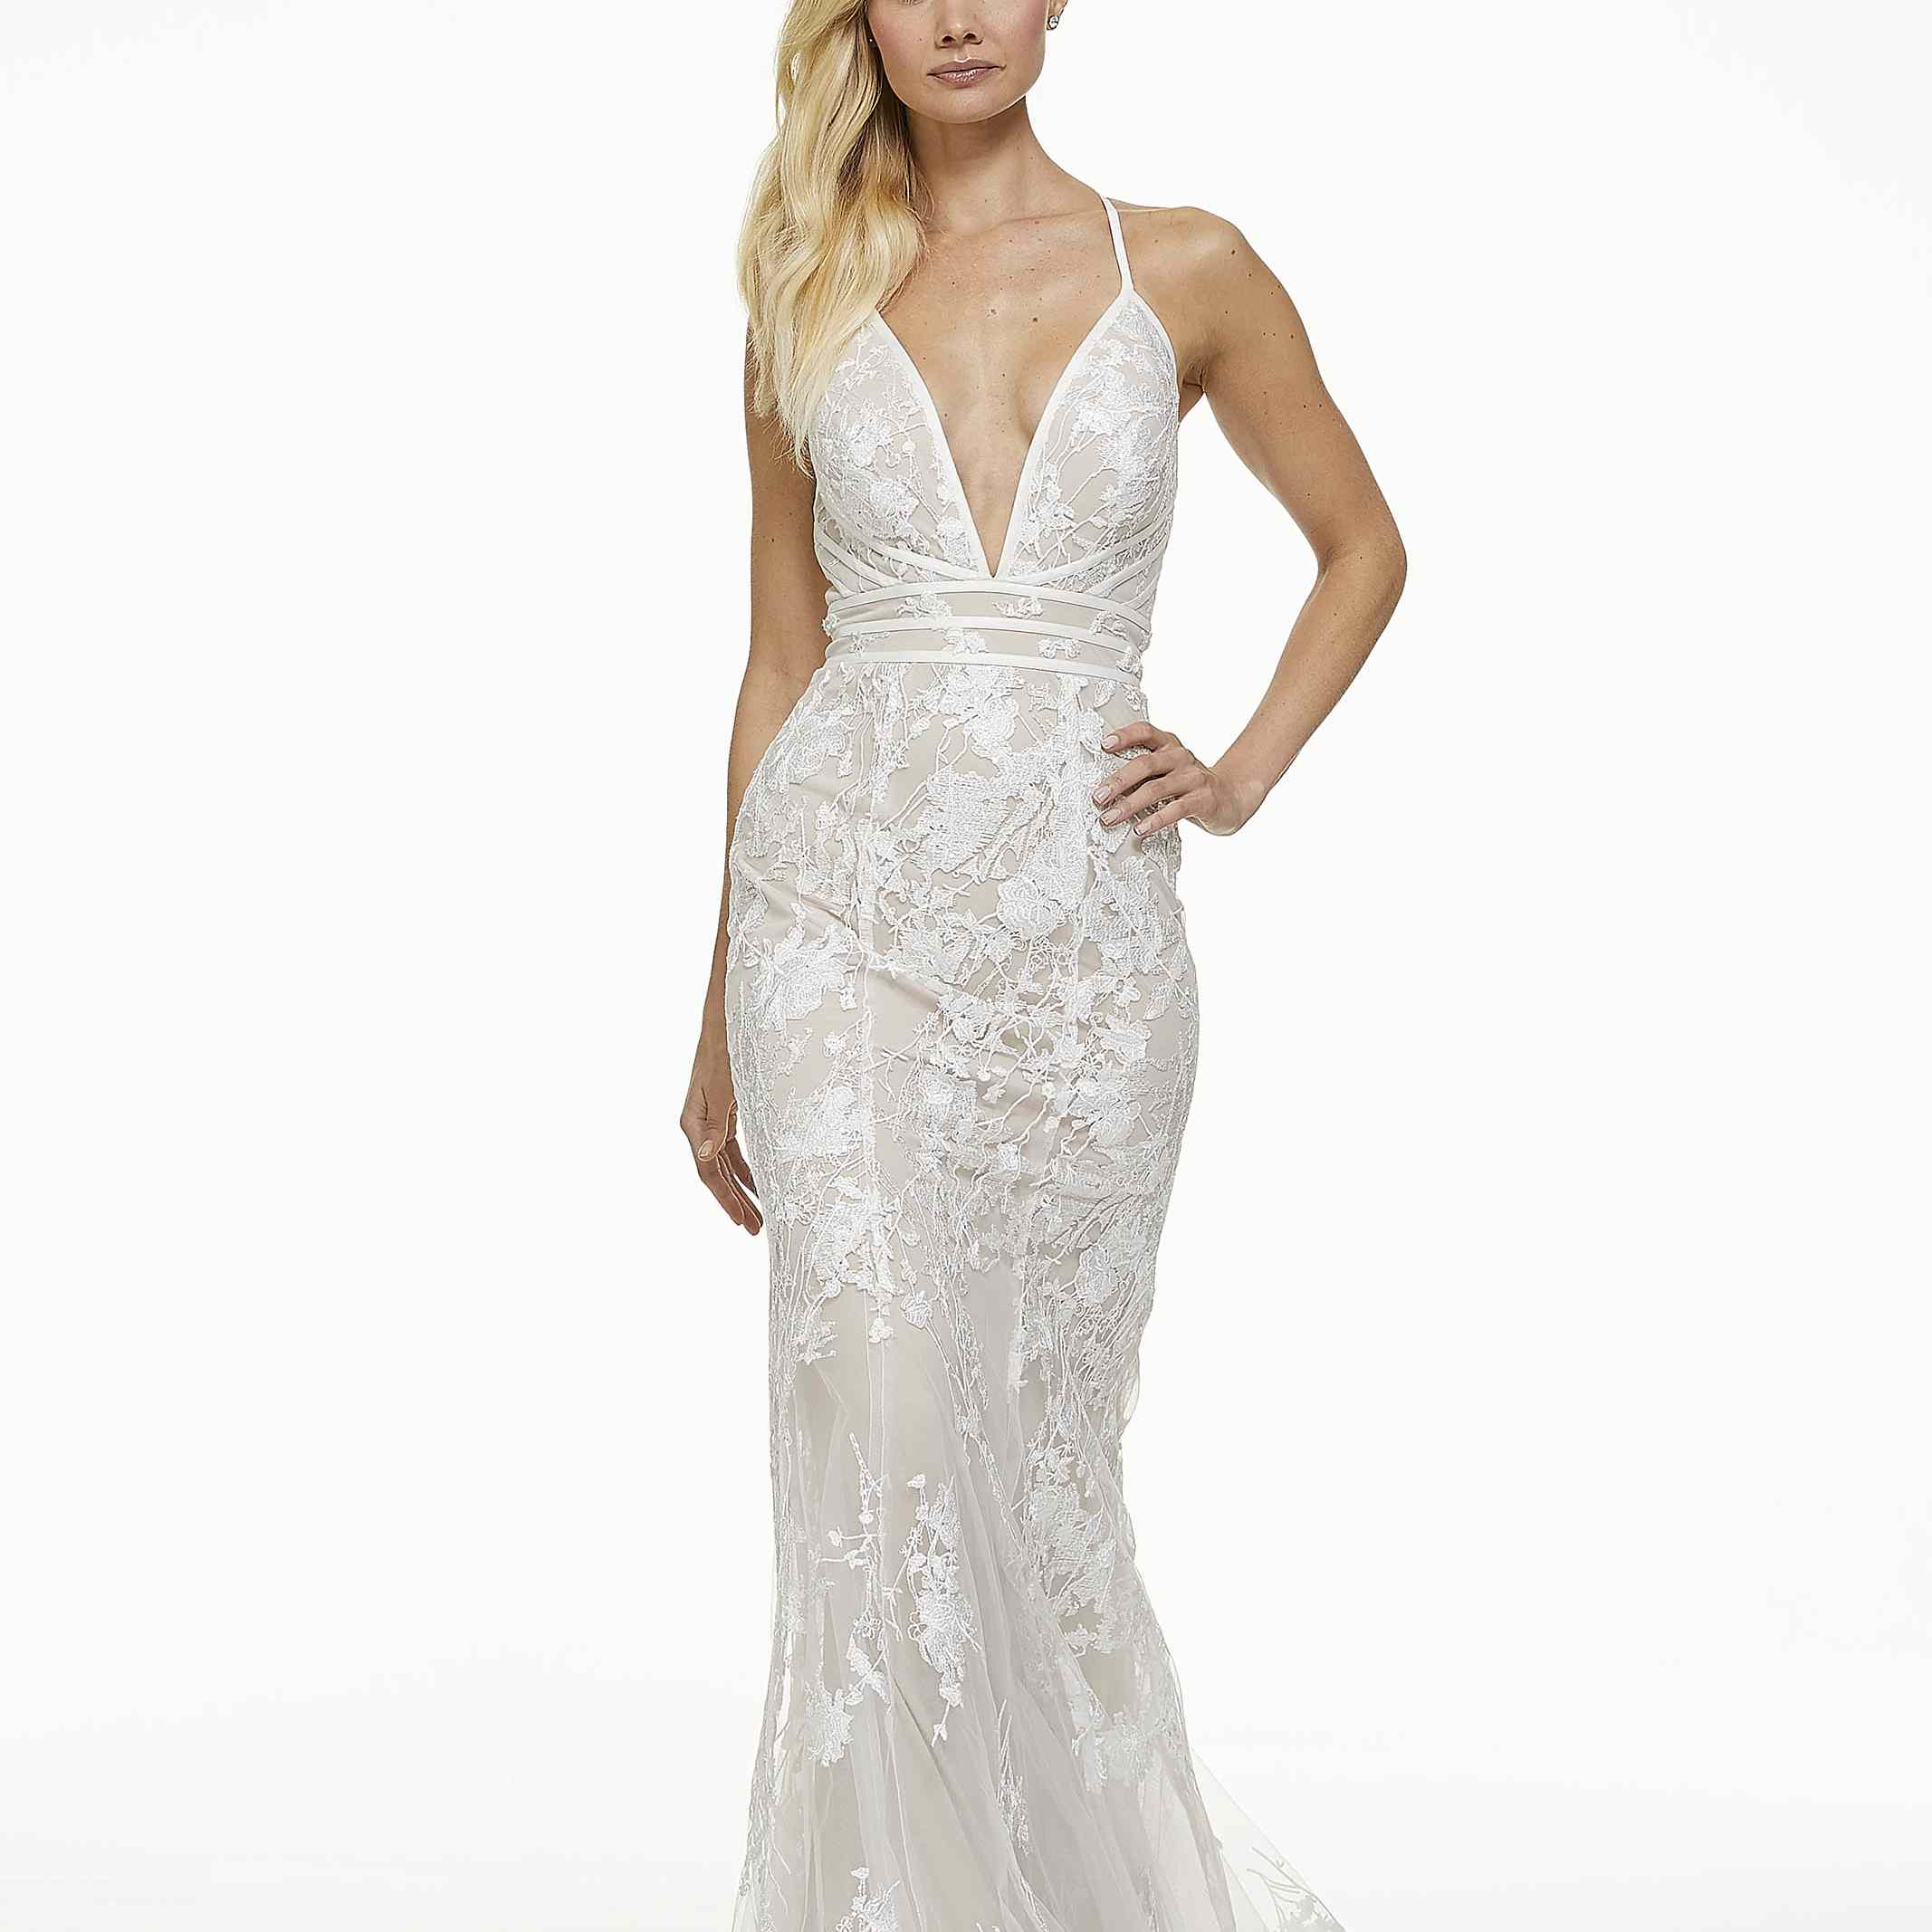 Model in fit-and-flare wedding dress with plunging neckline